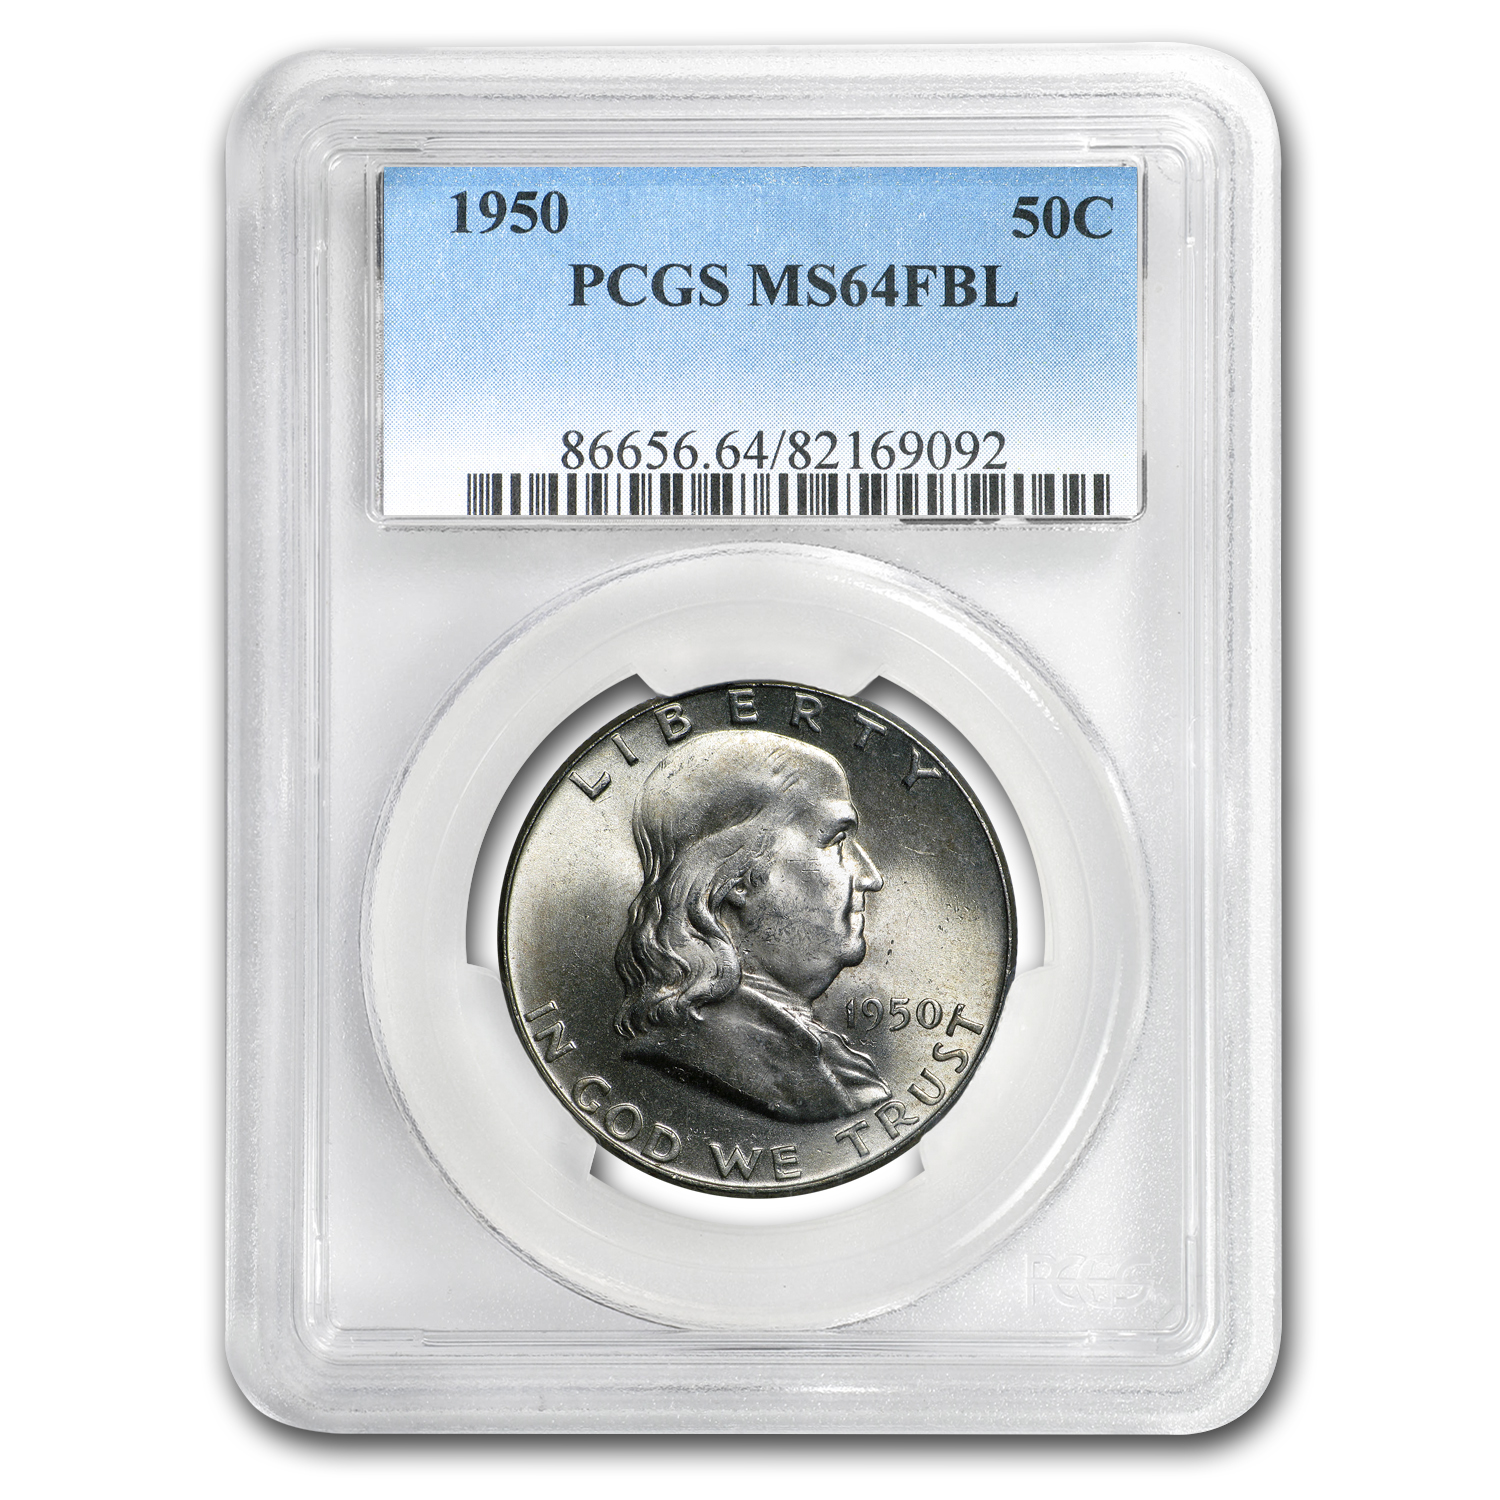 1950 Franklin Half Dollar MS-64 PCGS (FBL)